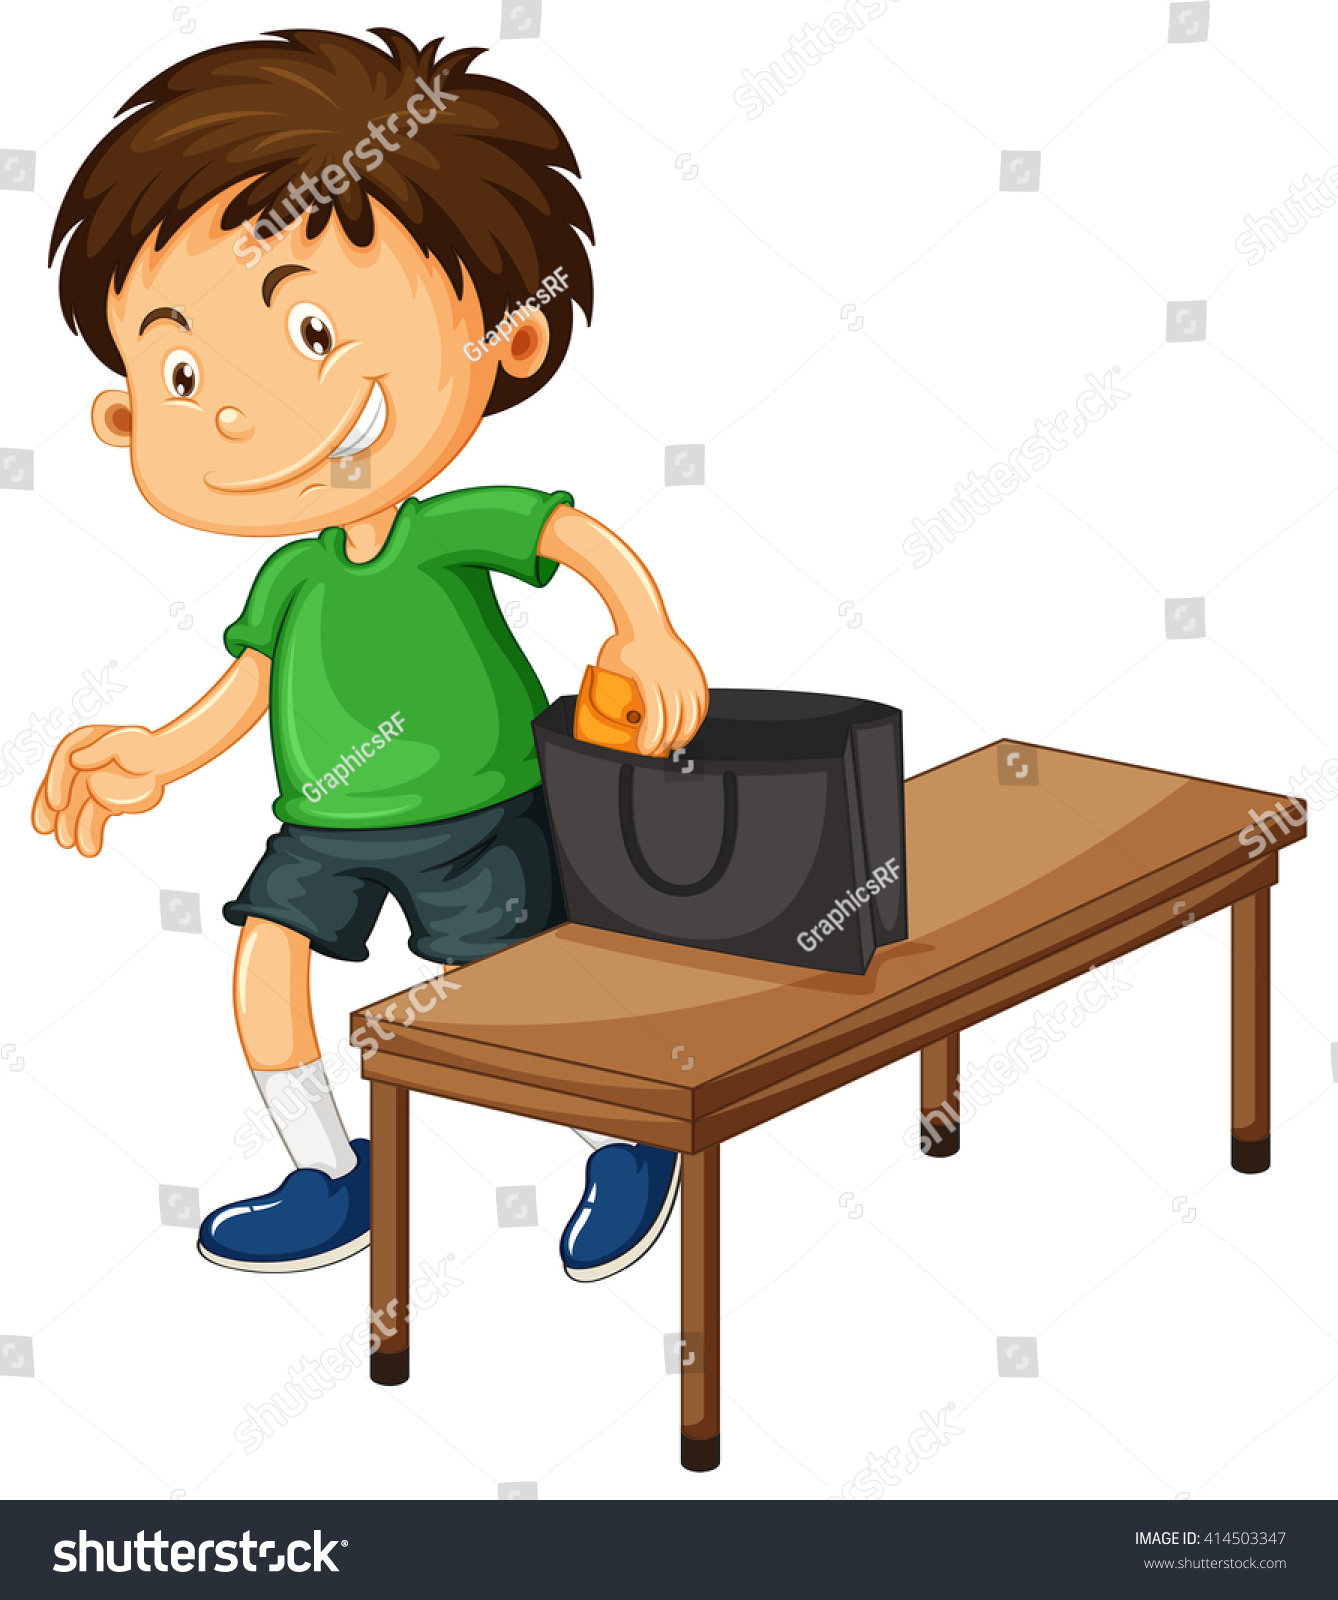 Boy Stealing Things Purse Illustration Stock Vector ...